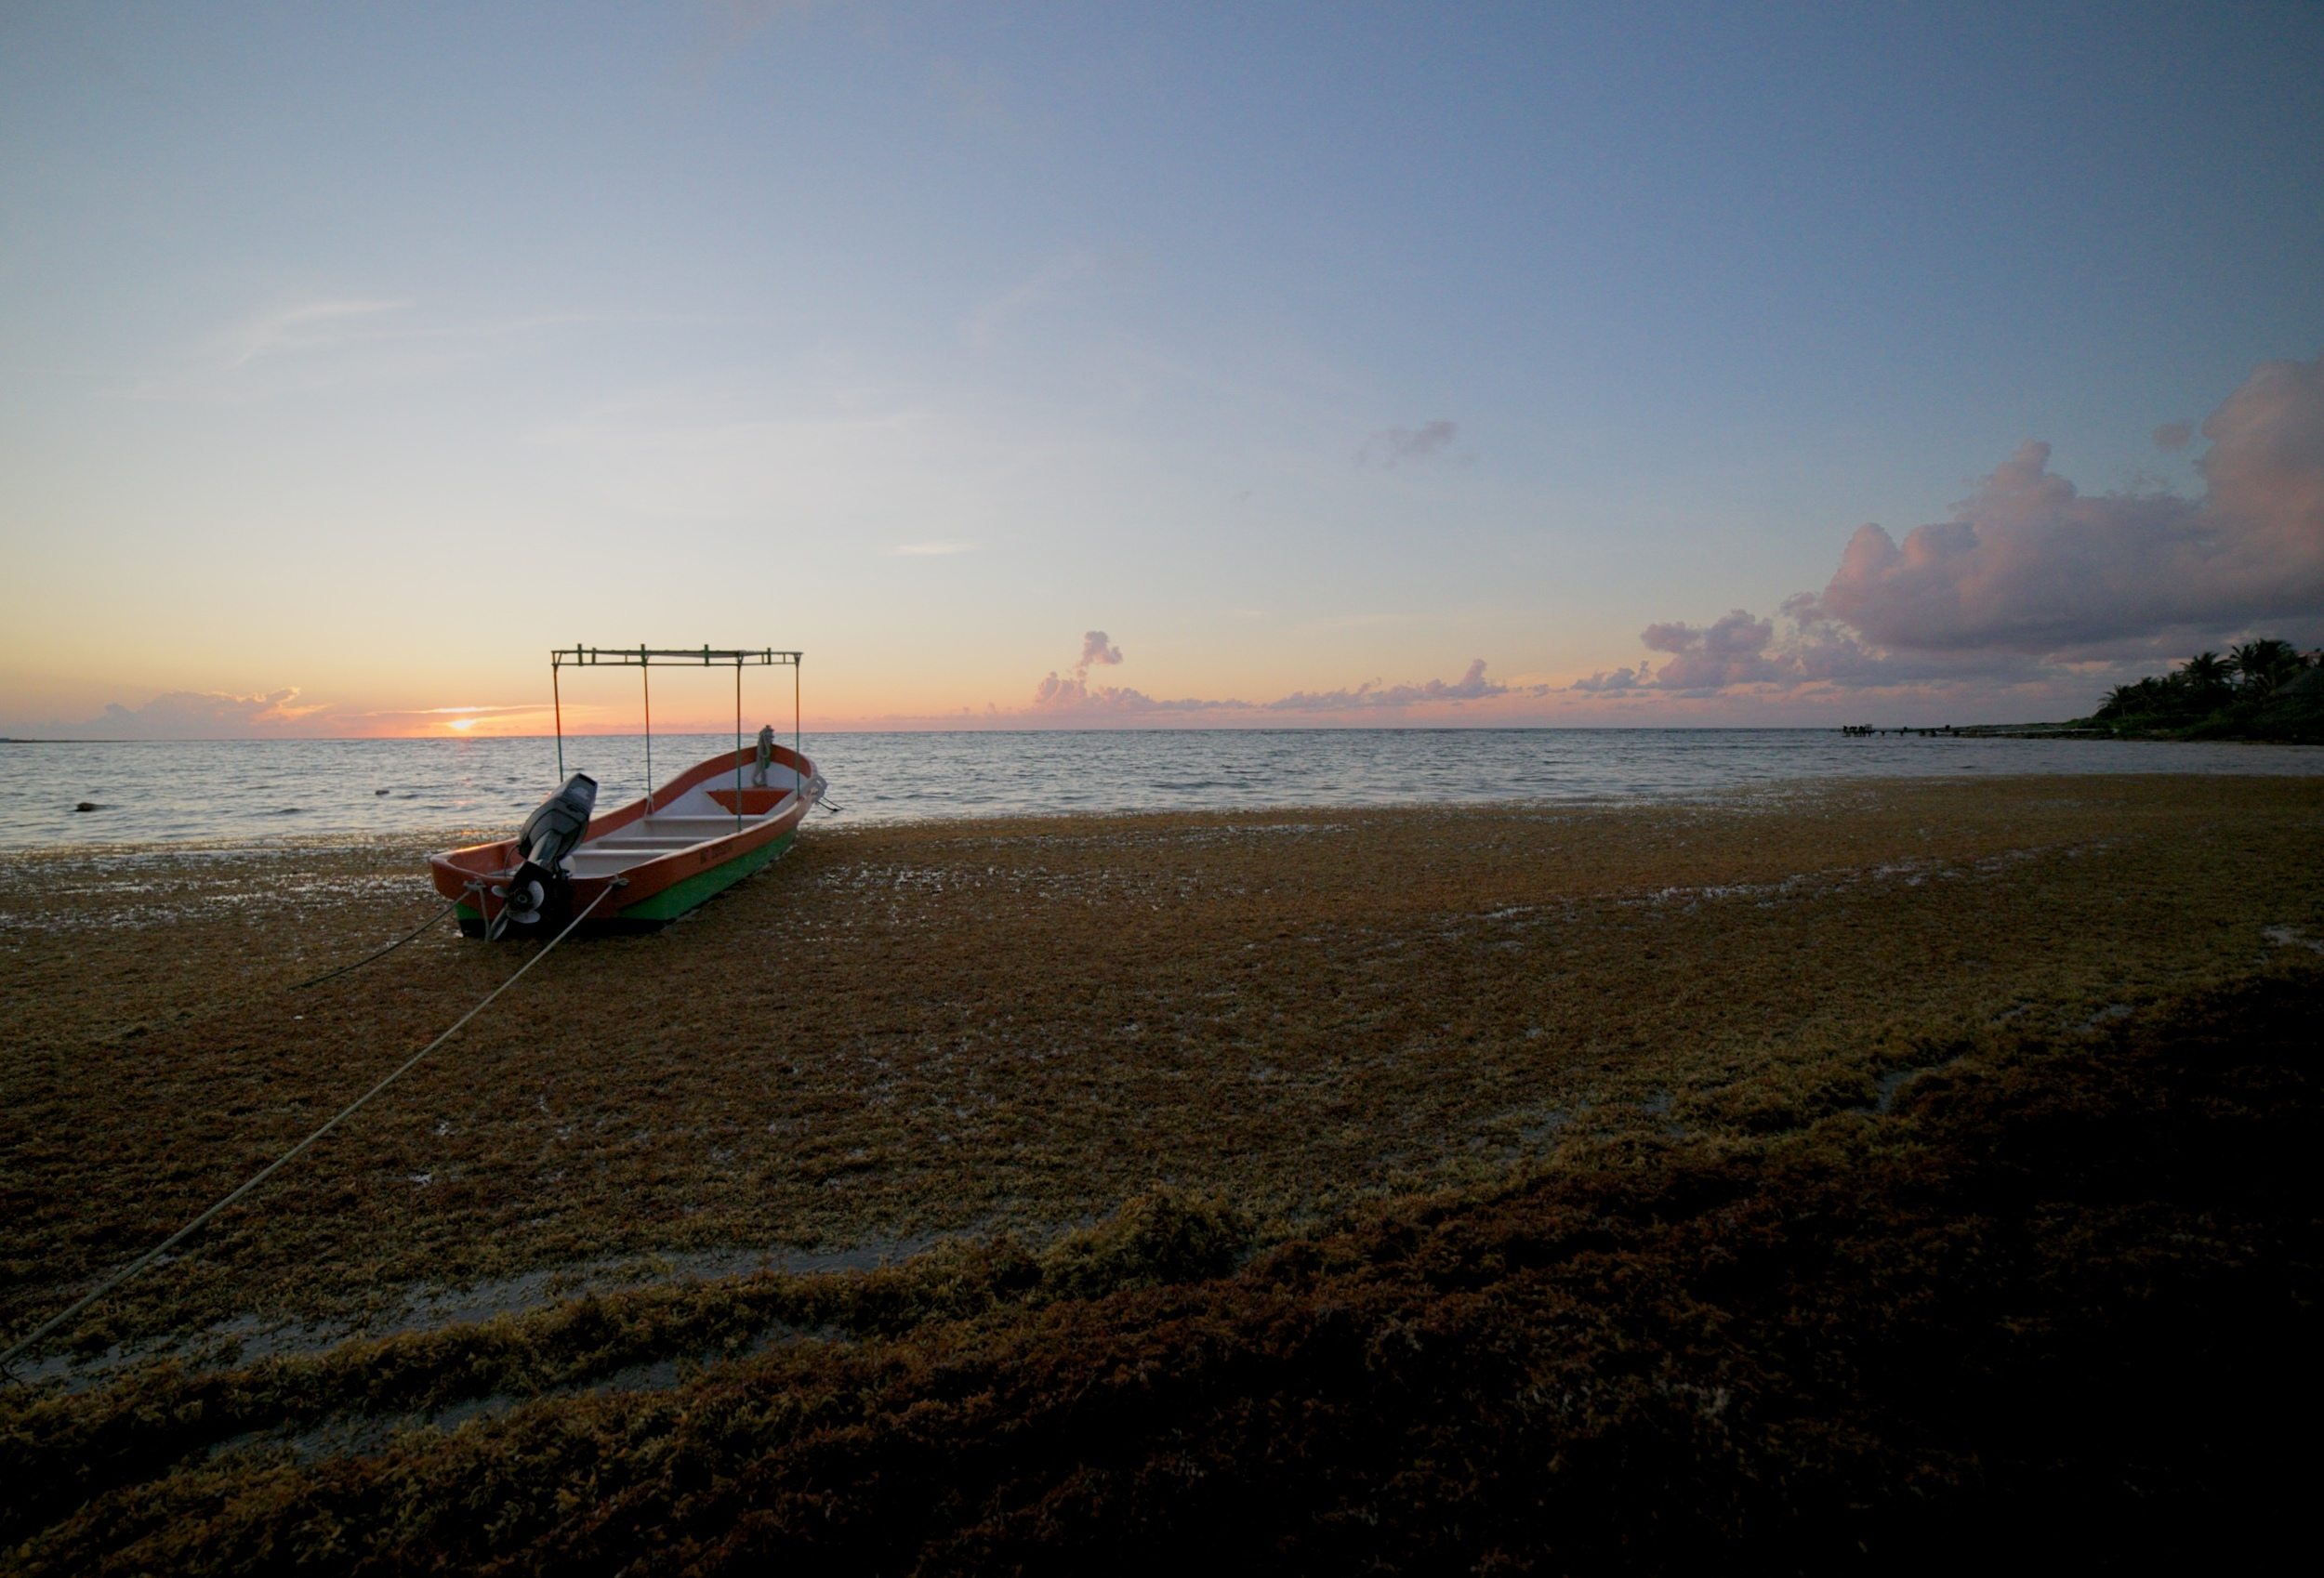 A small fishing boat resting in seaweed at sunrise in Mexico.